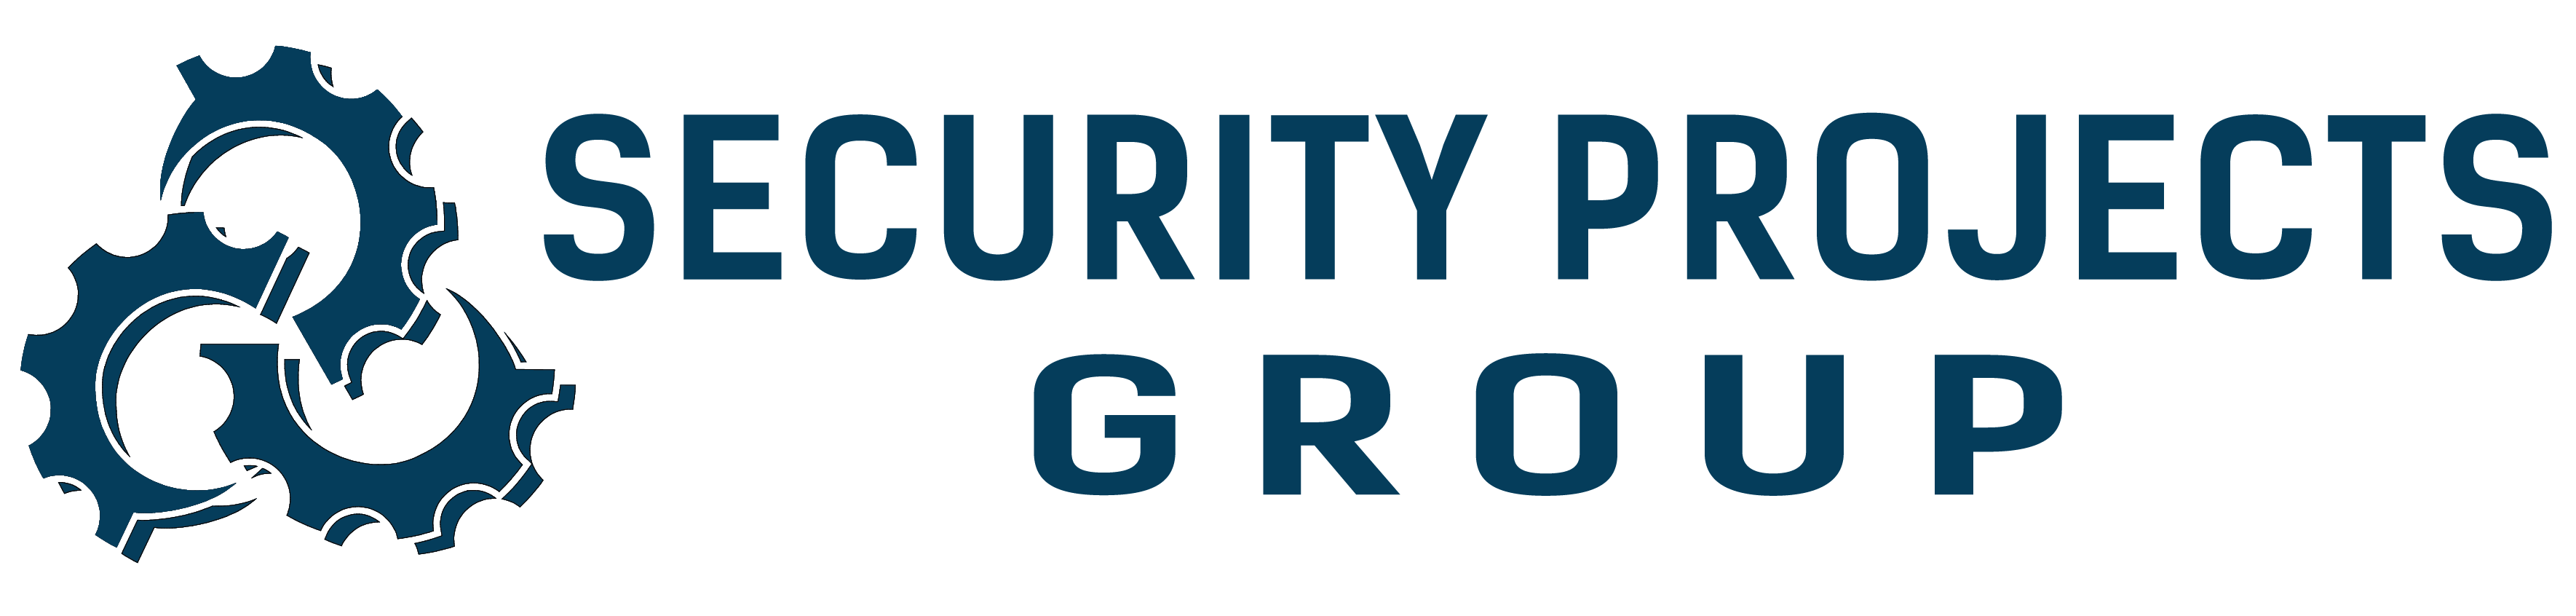 Security Projects Ltd